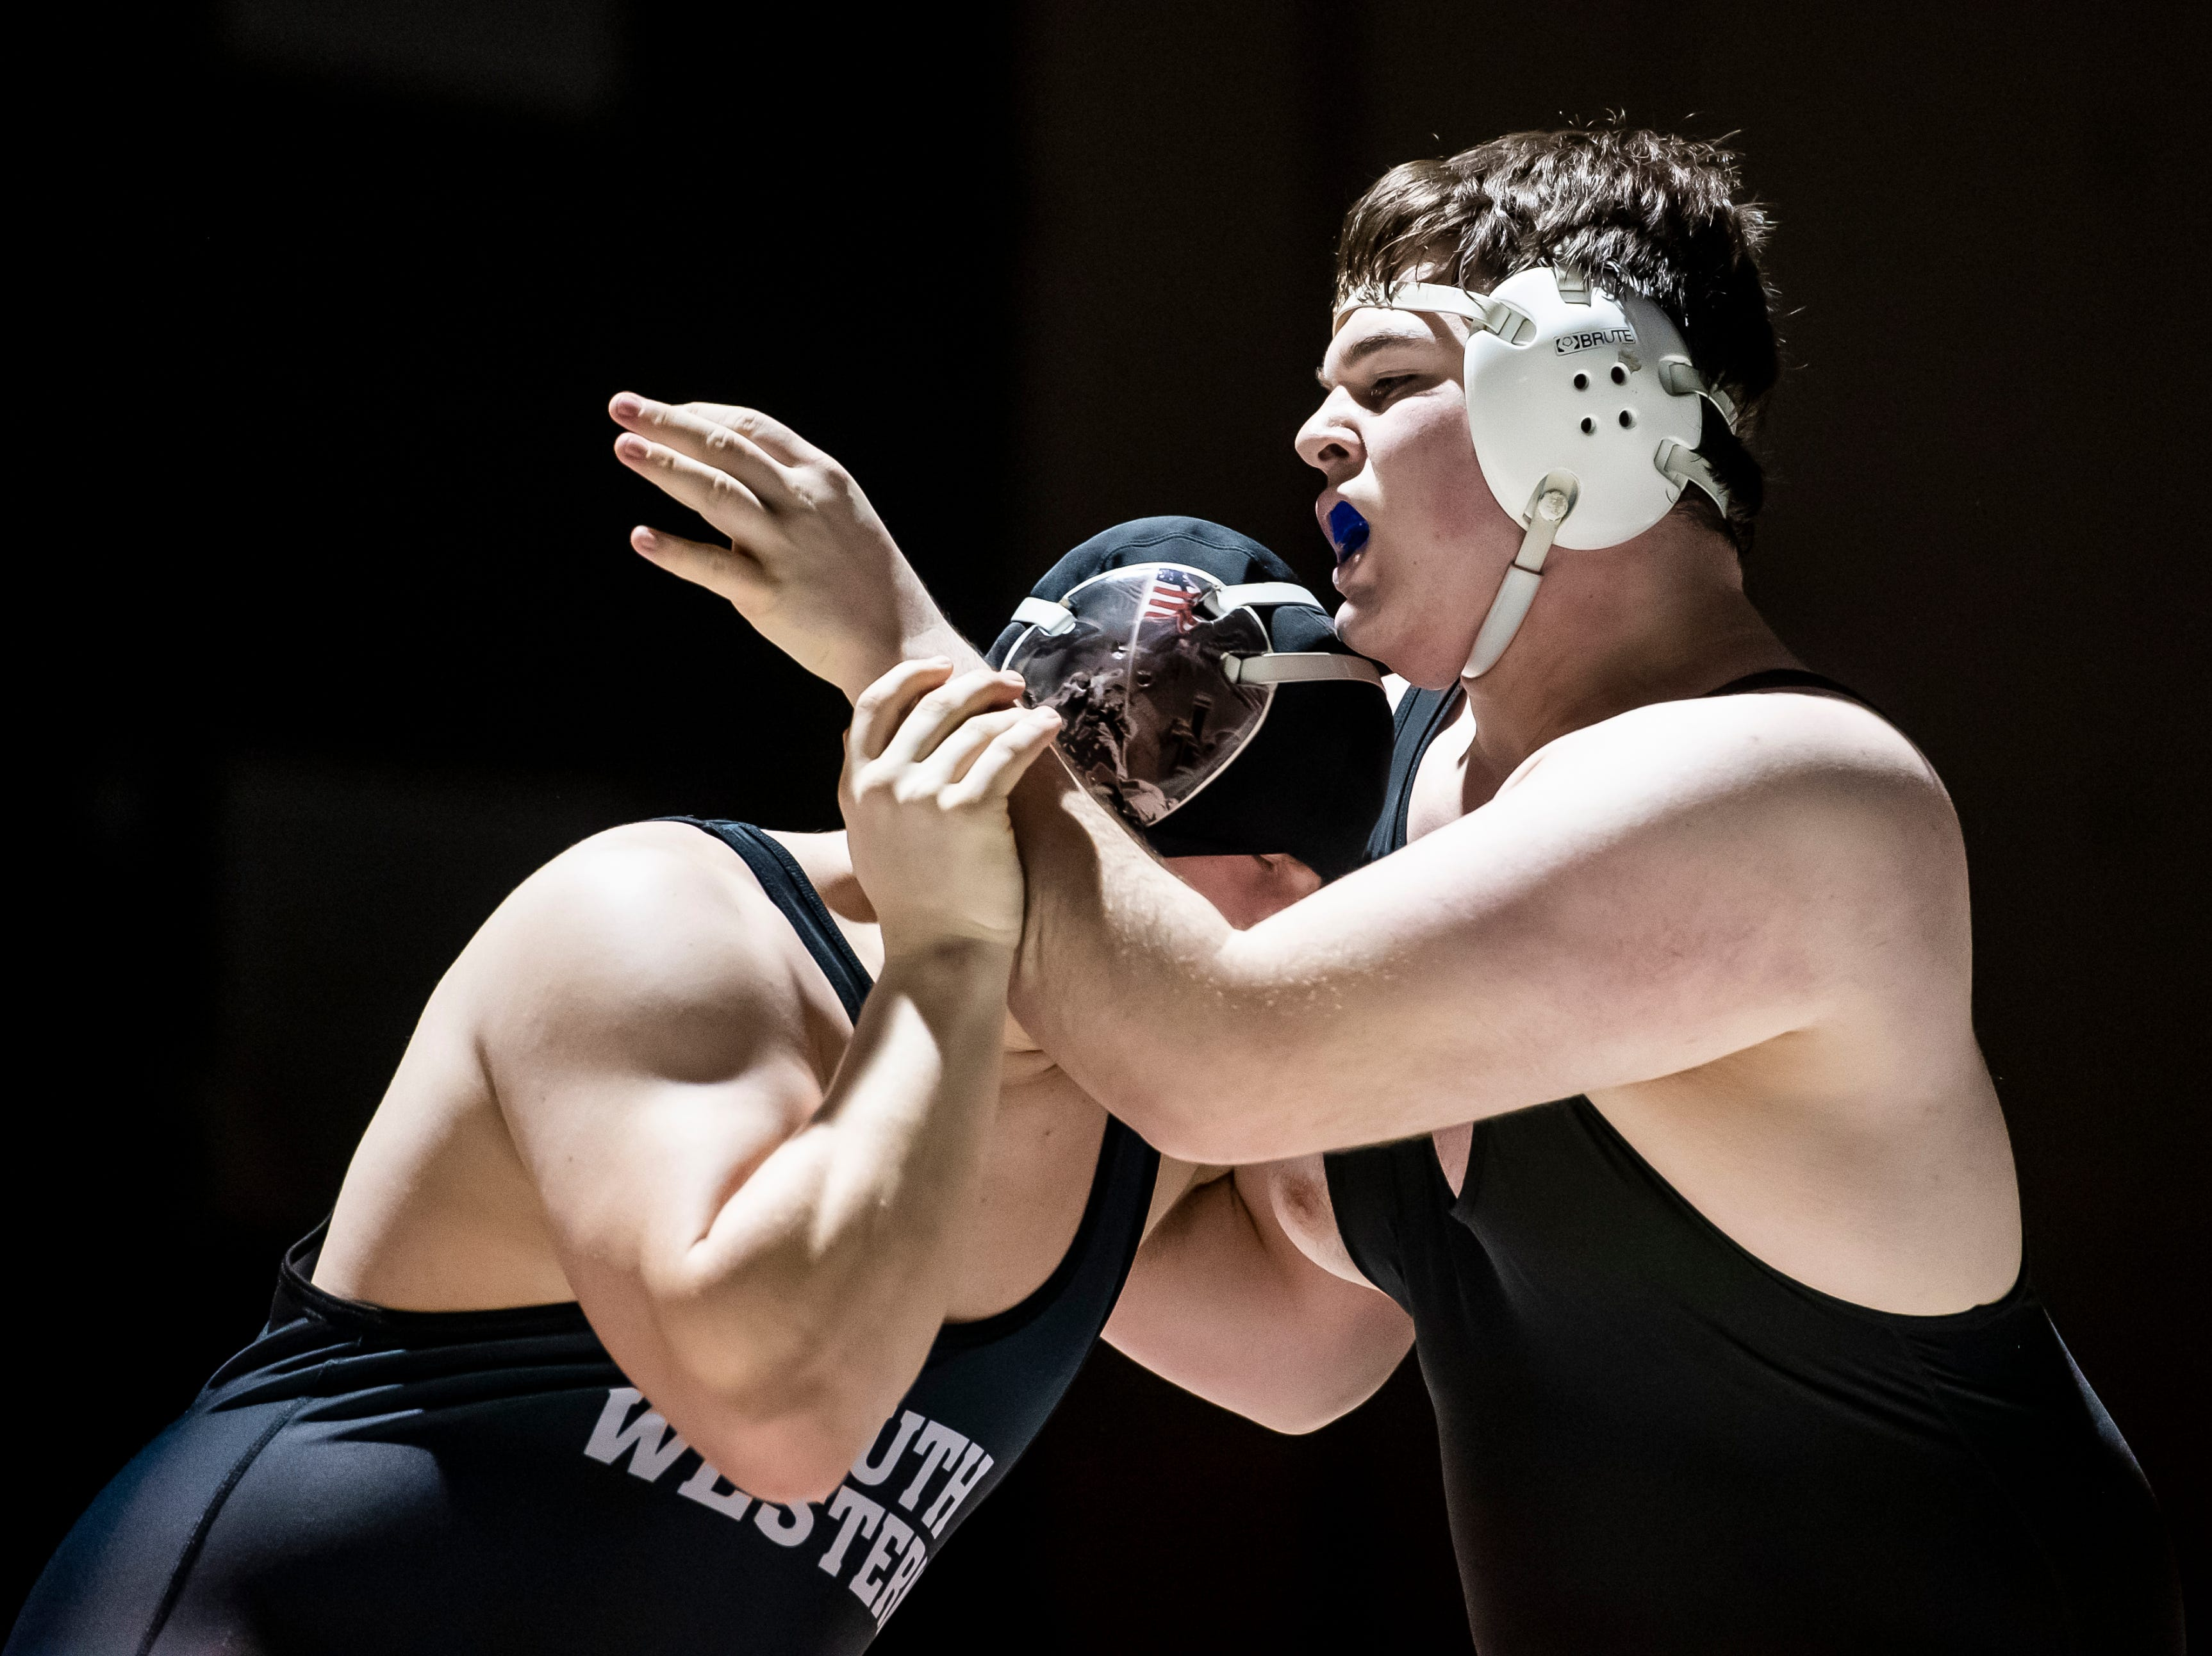 Spring Grove's Seth Worley, right, wrestles South Western's Tommy Morris during the 285-pound bout. Worley won the match, 3-1, Tuesday, Jan. 15, 2019. Spring Grove beat the Mustangs 36-25 during the Rockets' annual 'Take Down Cancer' match, which raised $44,250 for the Heather L. Baker Foundation.